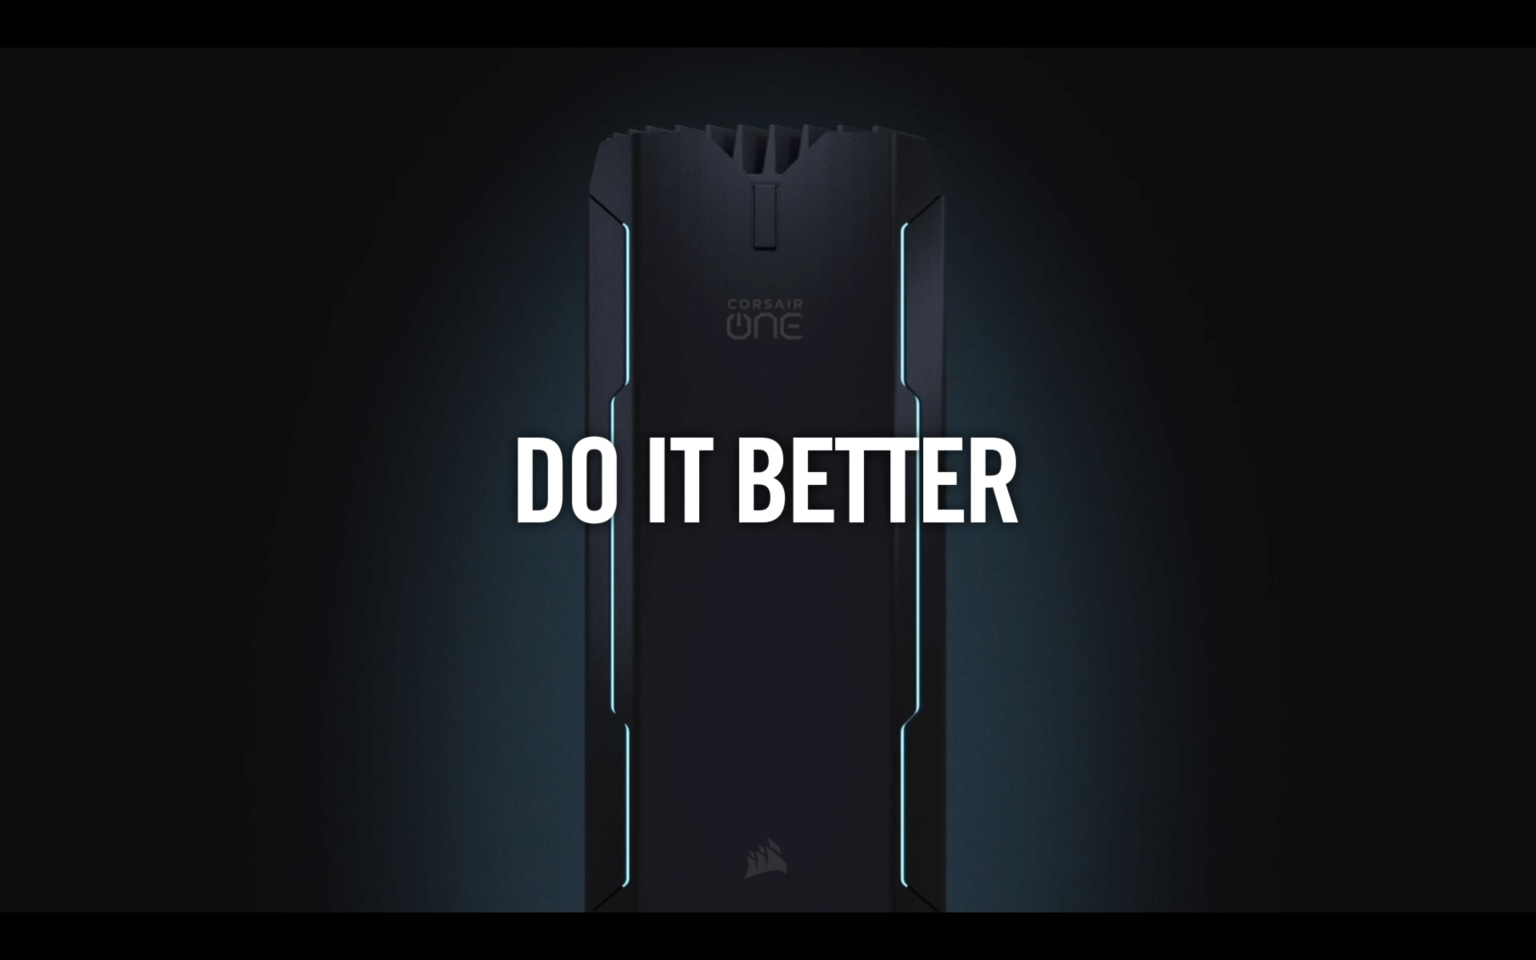 Corsair One Pro i180 Product Launch